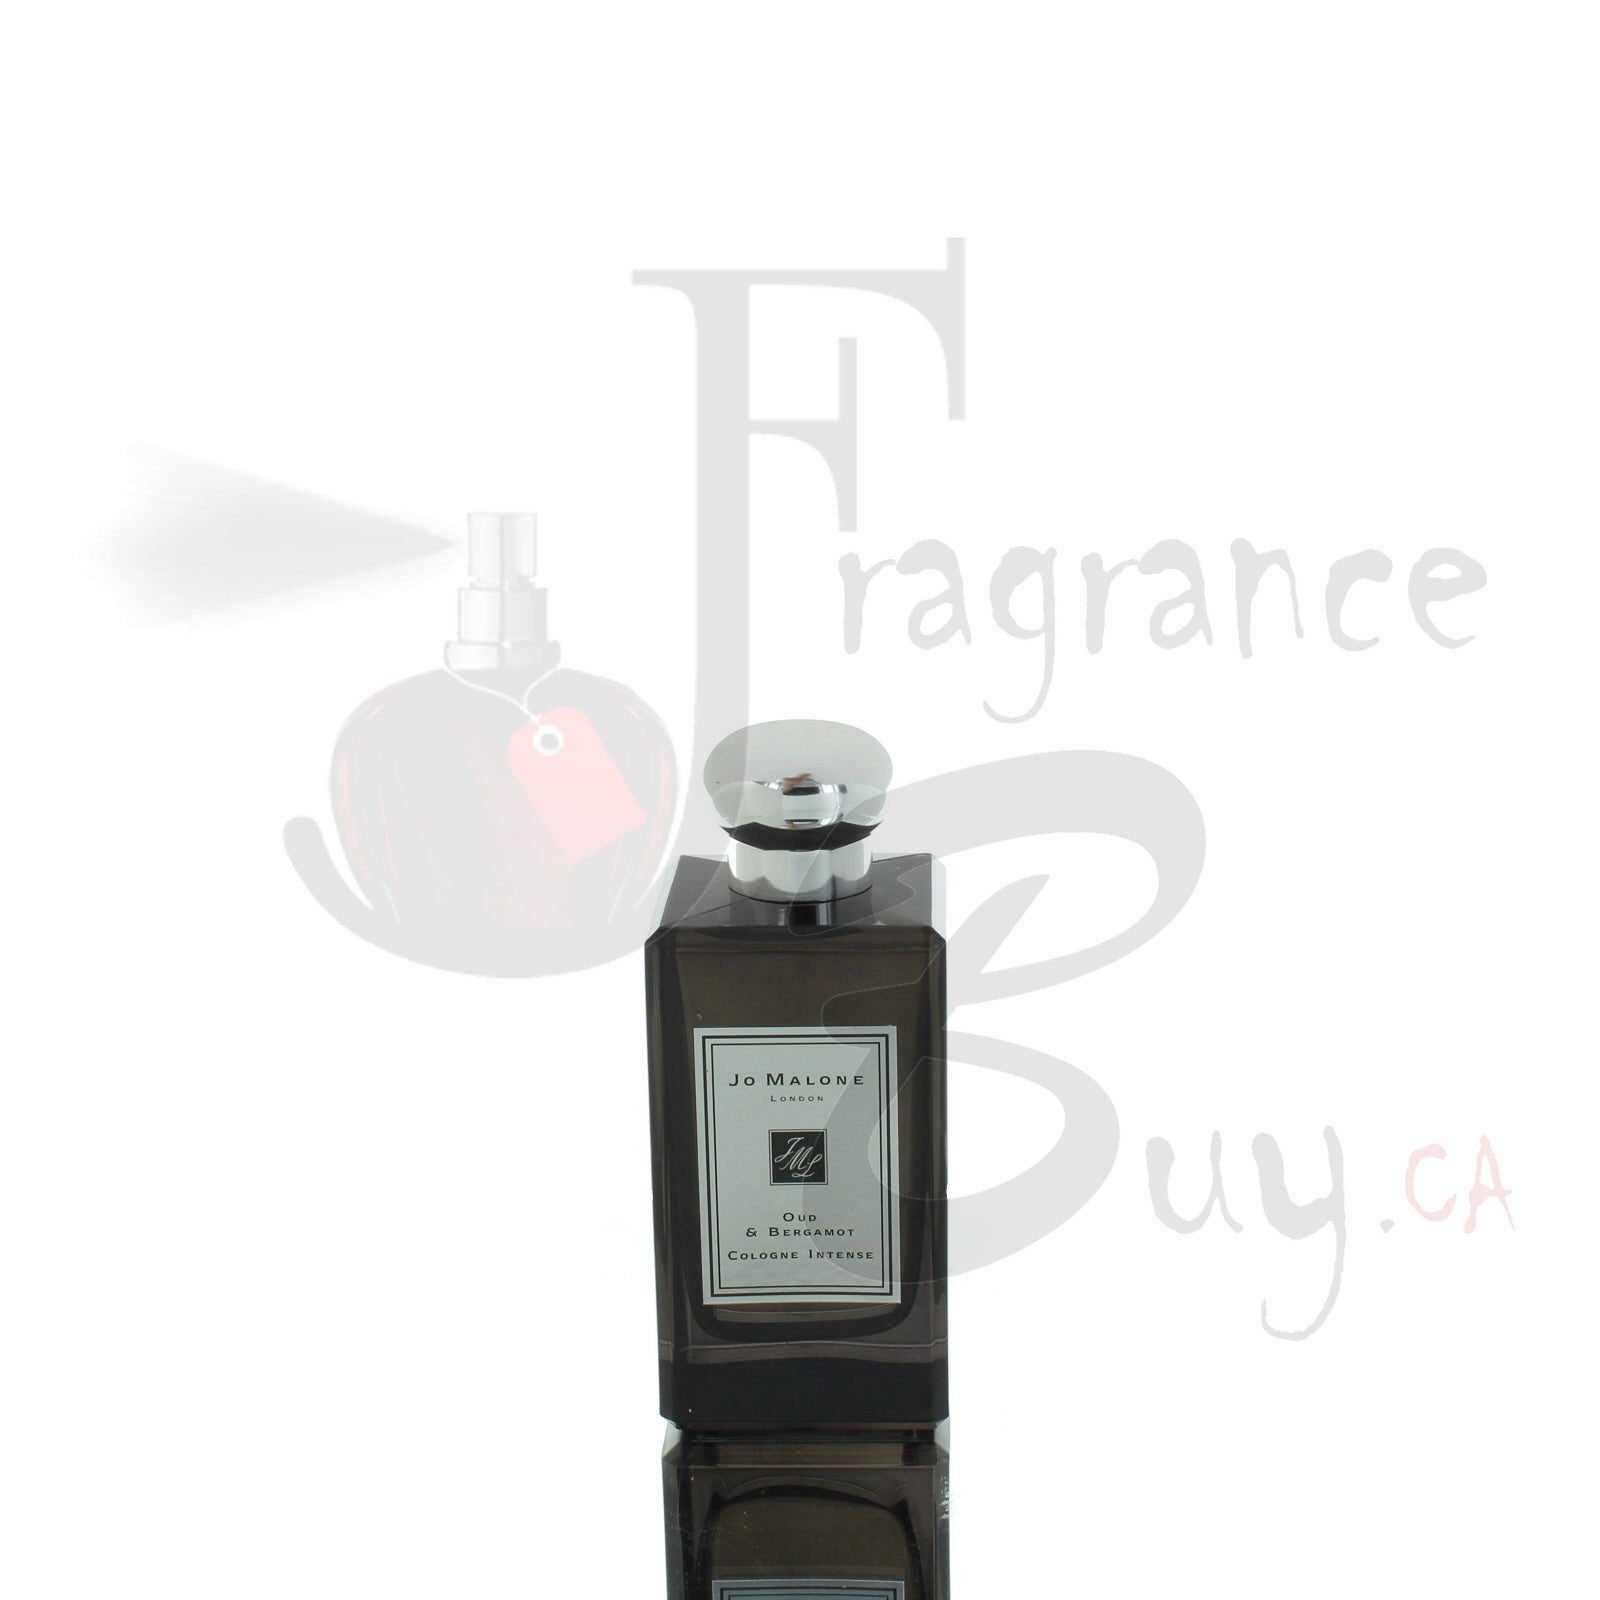 Jo Malone Oud And Bergamot For Man/Woman